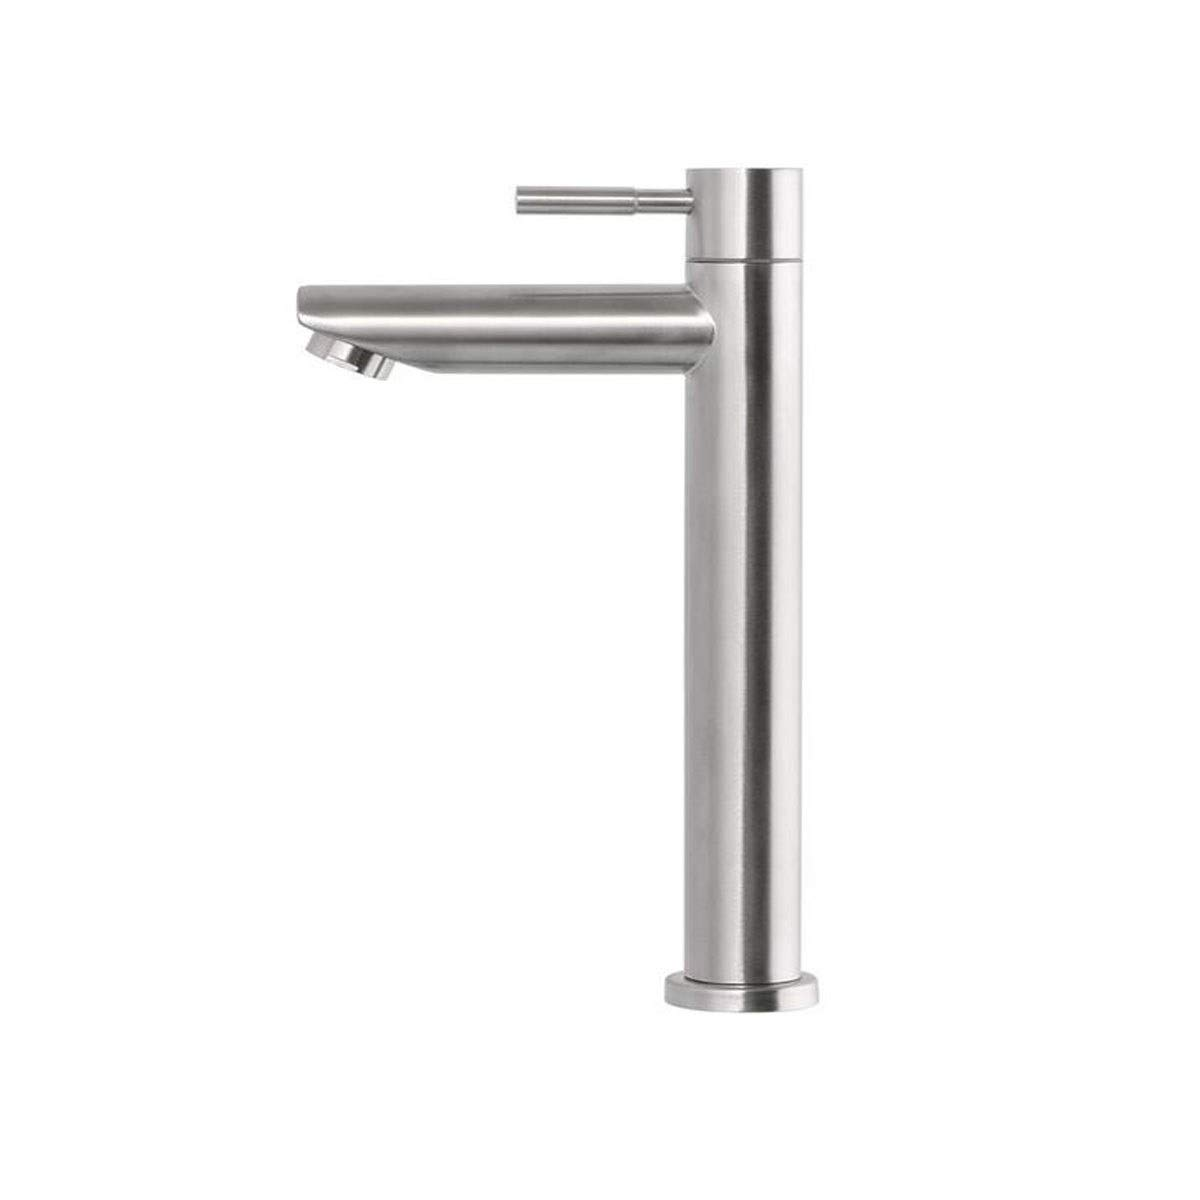 QIANZICAIDIANJIA Faucet, Stainless Steel Hot And Cold Lead-free Faucet Faucet, Suitable For Above Counter Basin Wash Basin Under Counter Basin stainless steel faucet by QIANZICAIDIANJIA